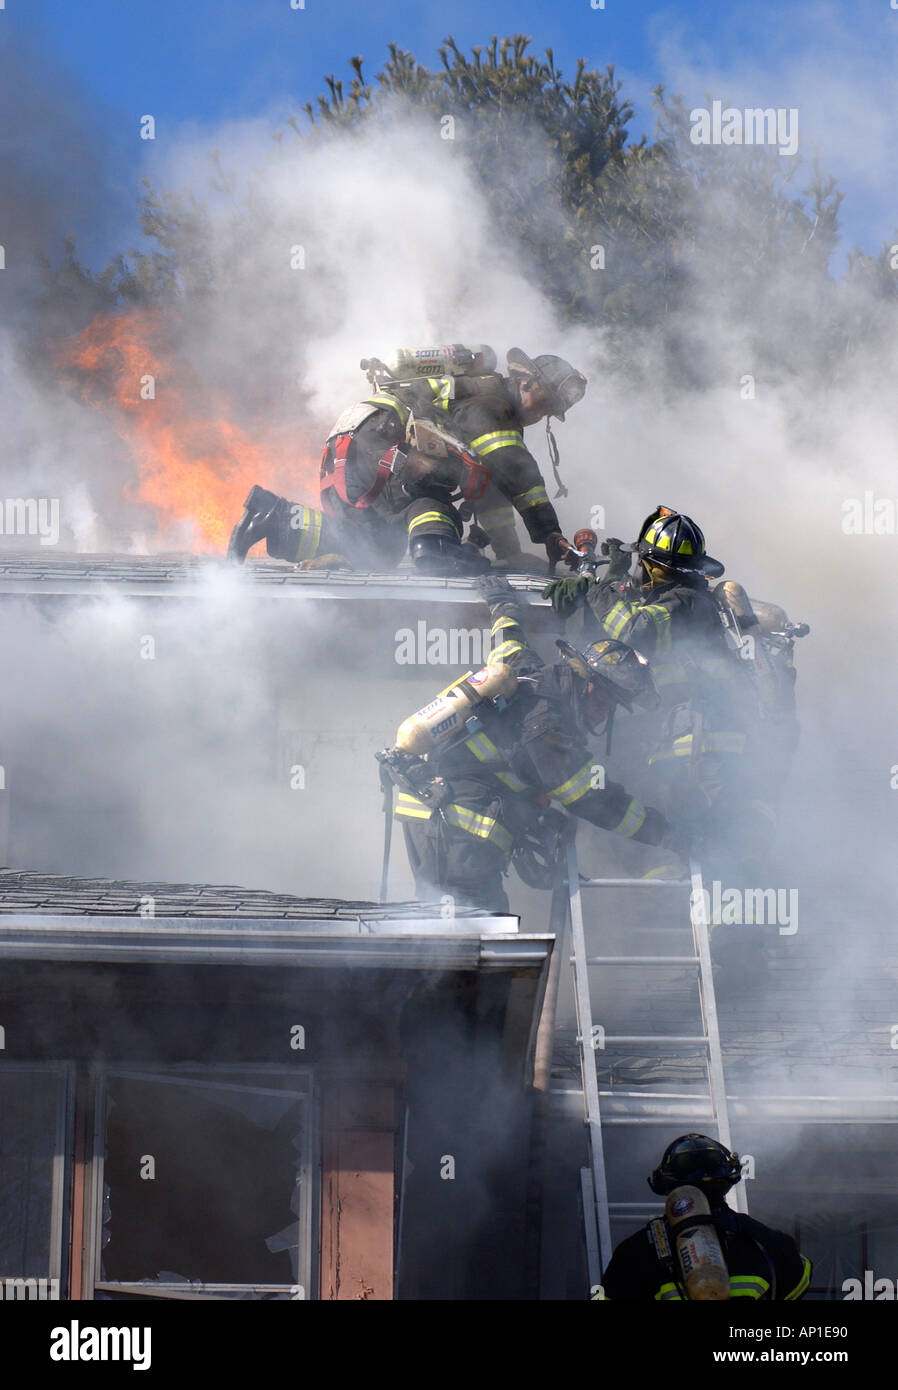 Firefighters scramble off the roof during a fire House fire in New Haven CT as the flames go out of control - Stock Image